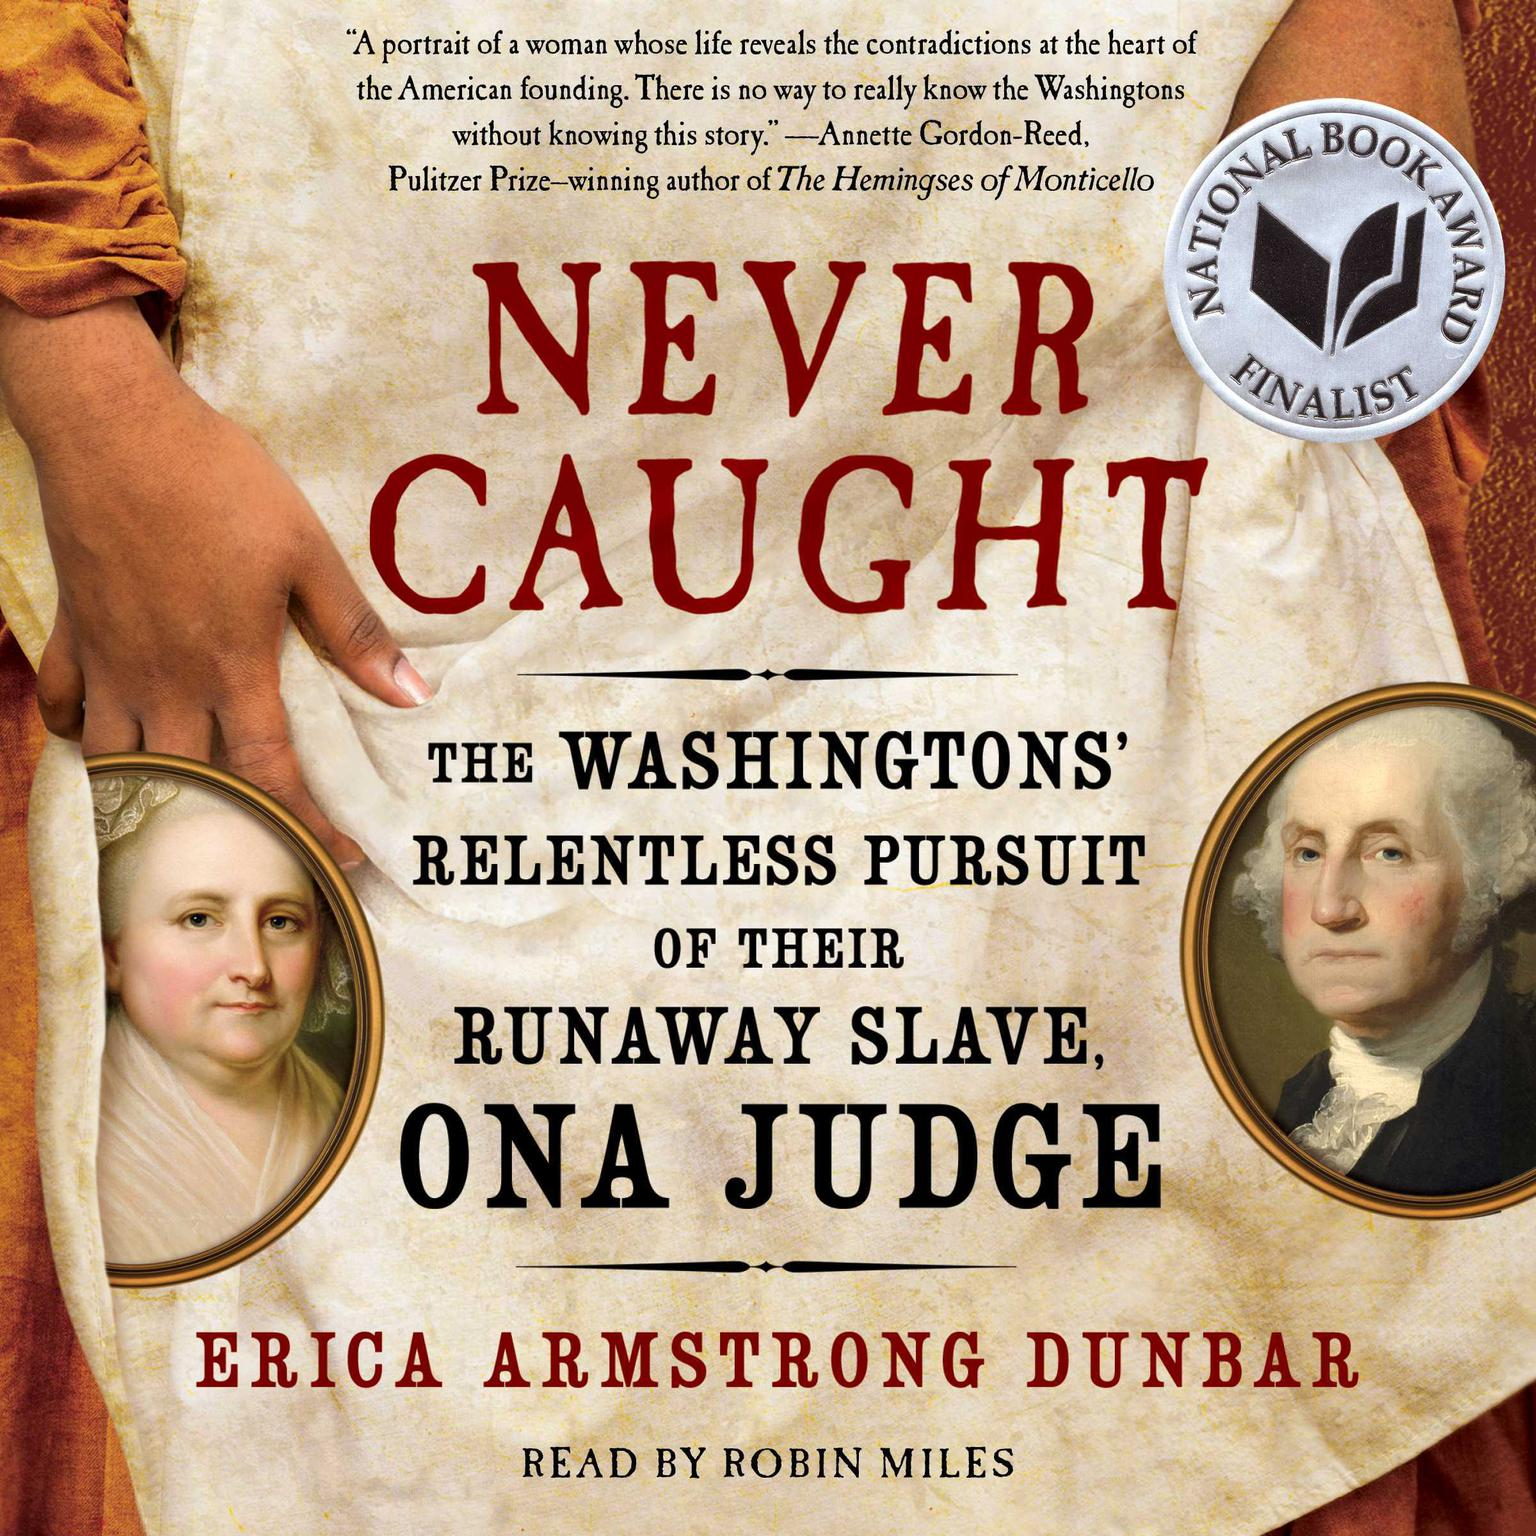 Printable Never Caught: The Washingtons' Relentless Pursuit of Their Runaway Slave, Ona Judge Audiobook Cover Art